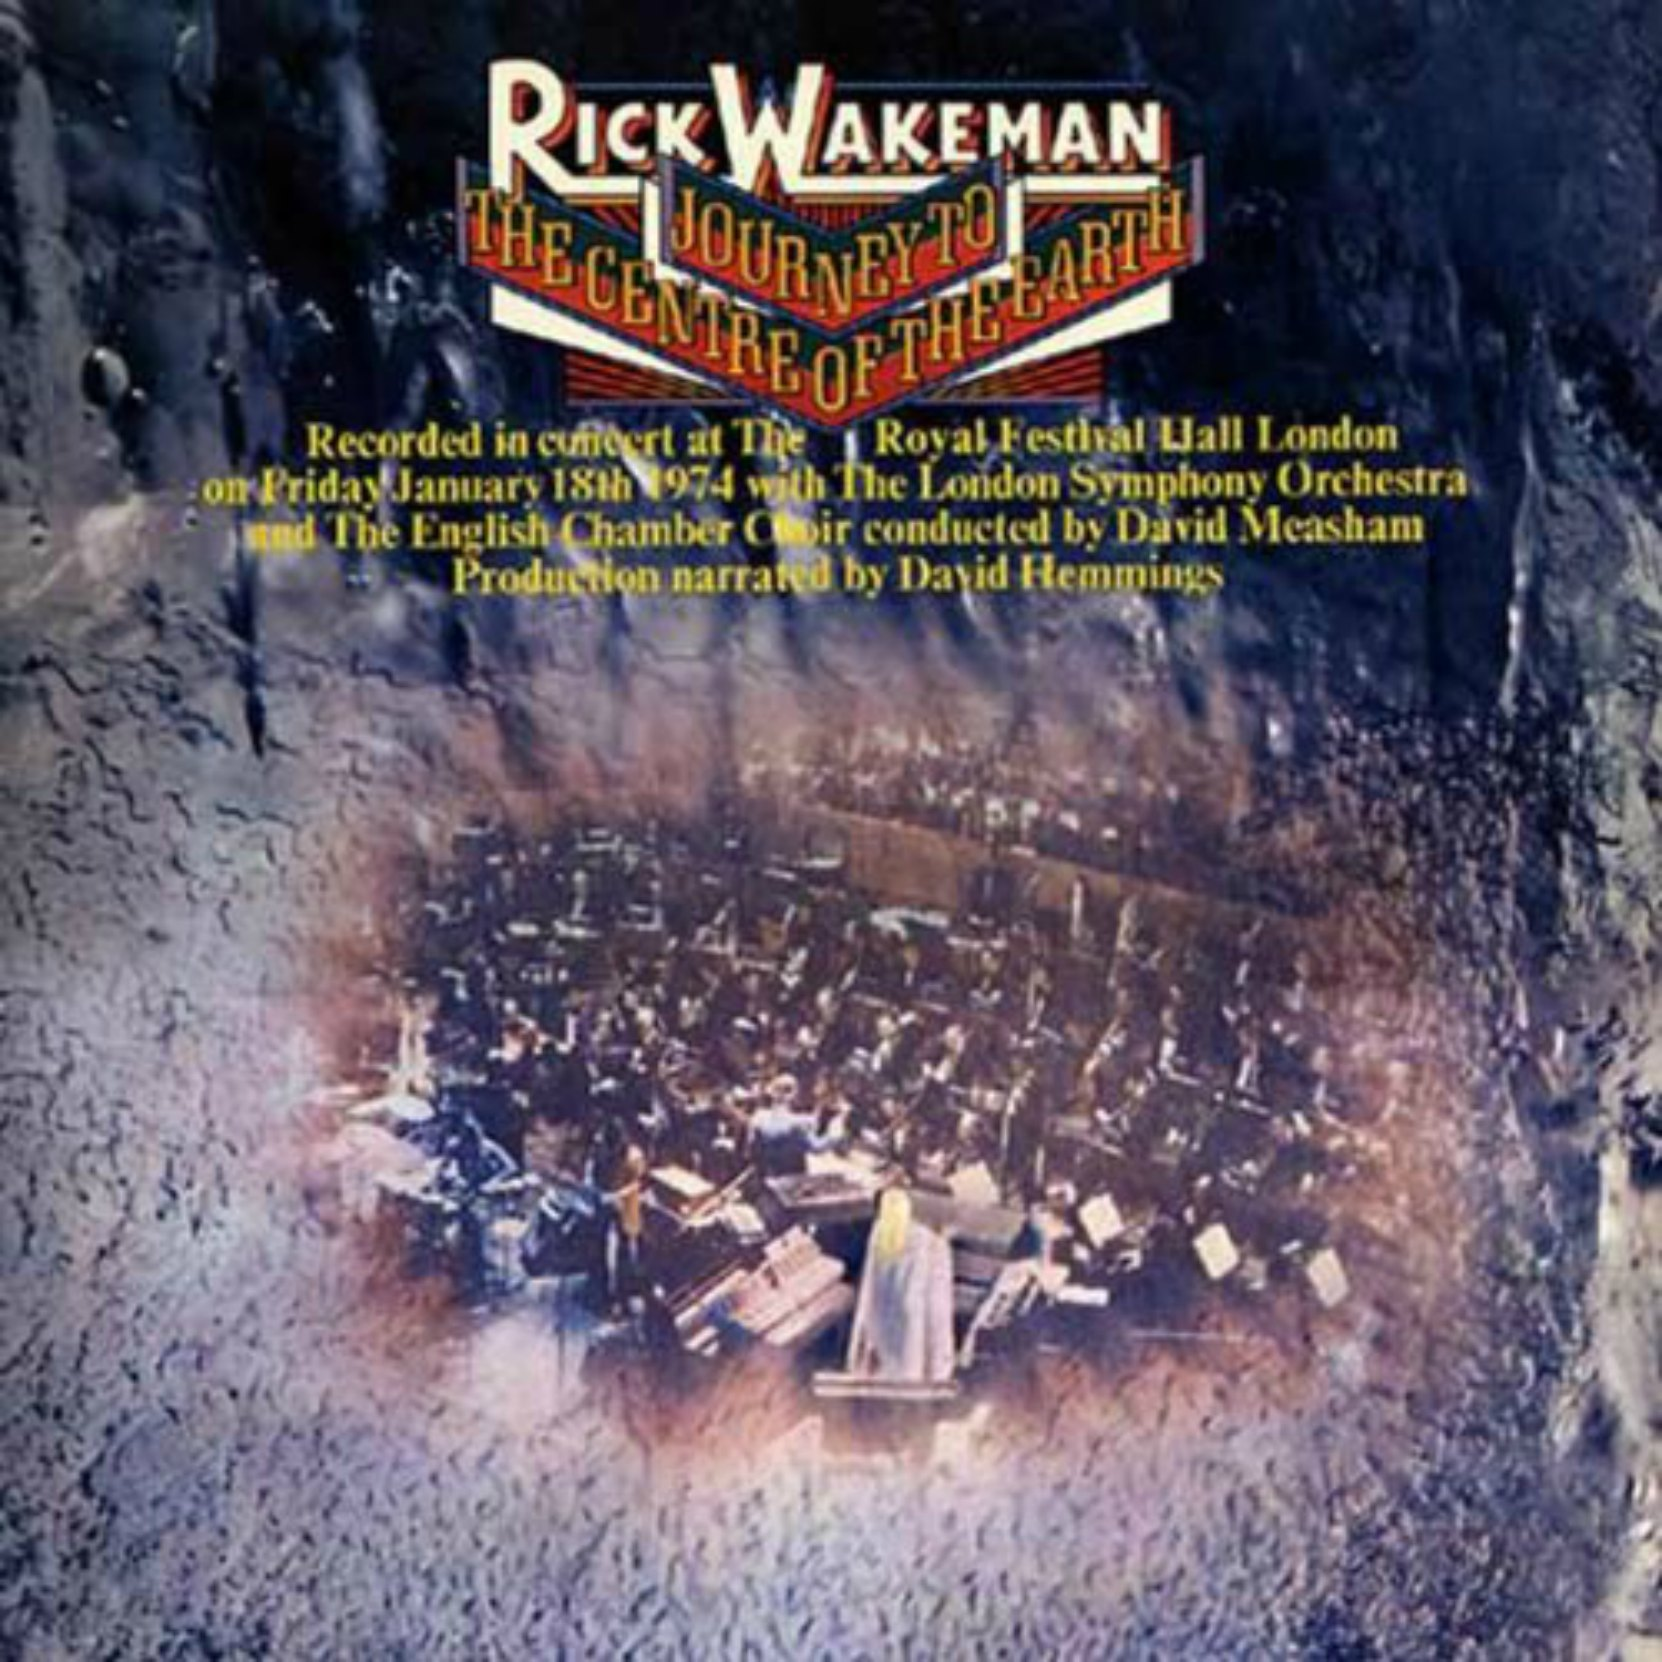 CD cover, Rick Wakeman - Journey To The Center of the Earth - A&M Records